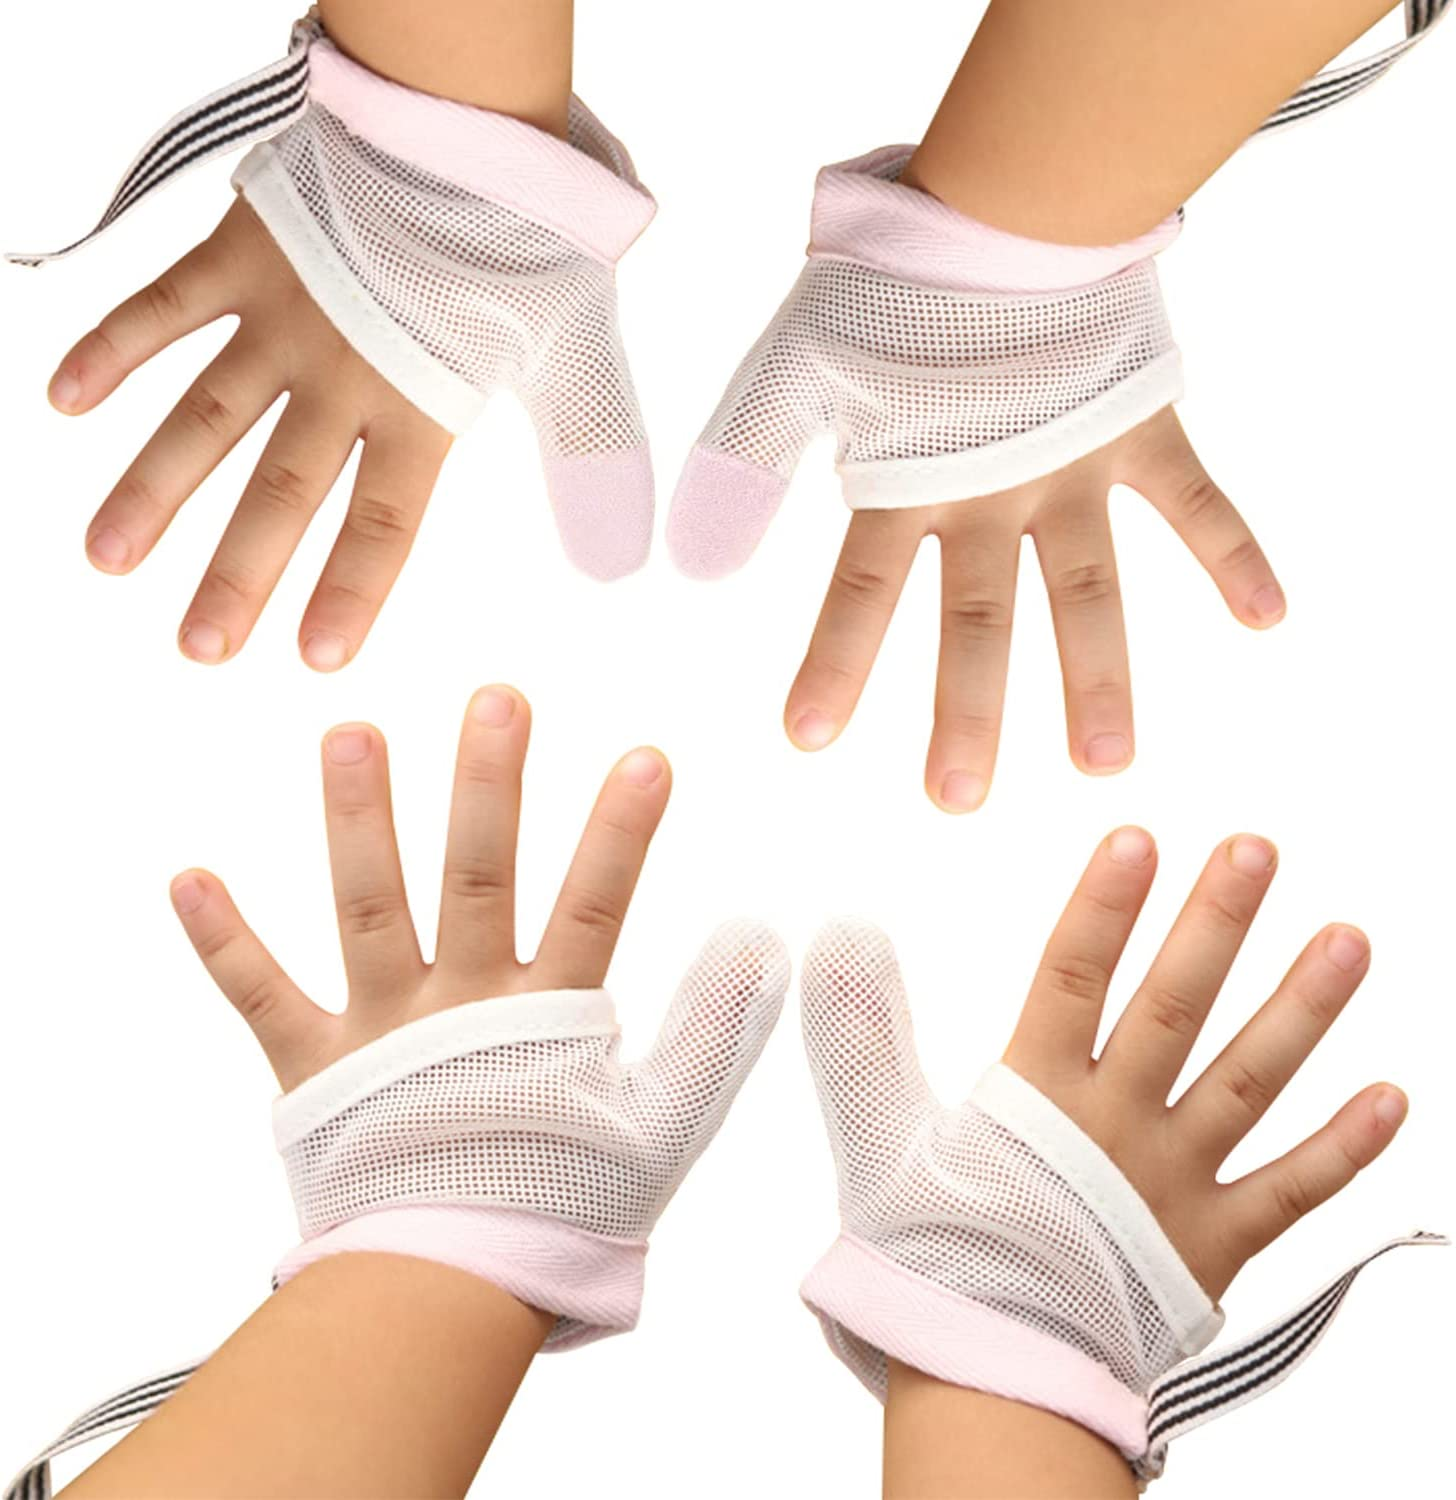 2 Pairs Thumb Guard for Kids Stop Thumb Sucking Baby Toddler Fingers Treatment Kit with Wrist Band(Red+M)